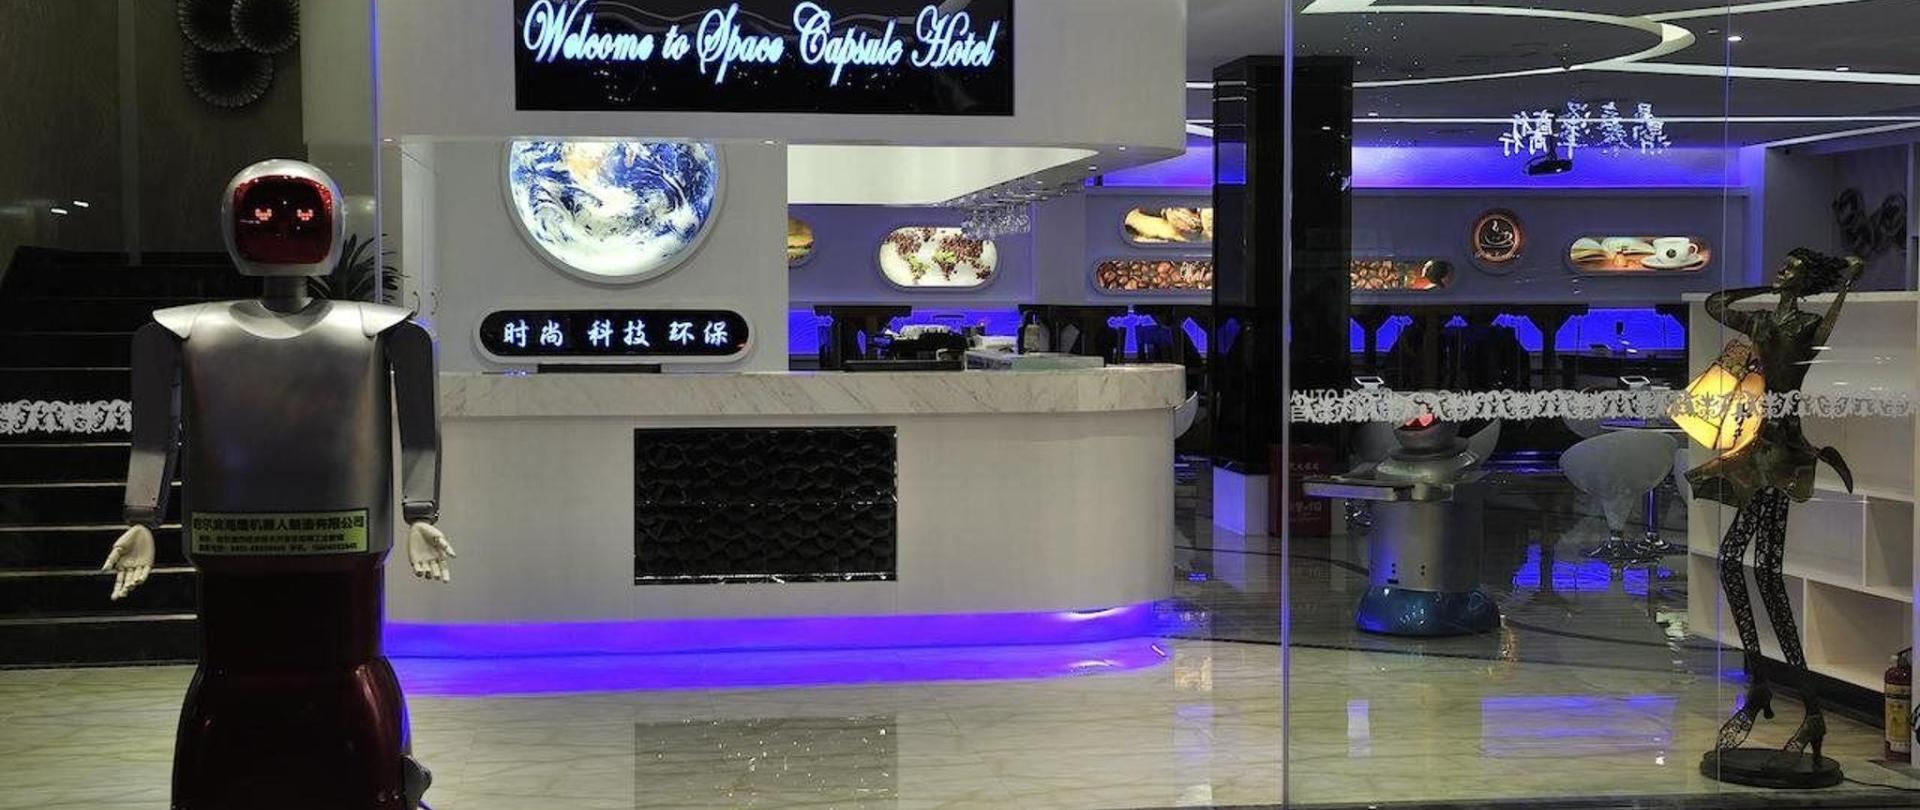 6.3 Pengheng Space Capsules Hotel  Shenzhen  China